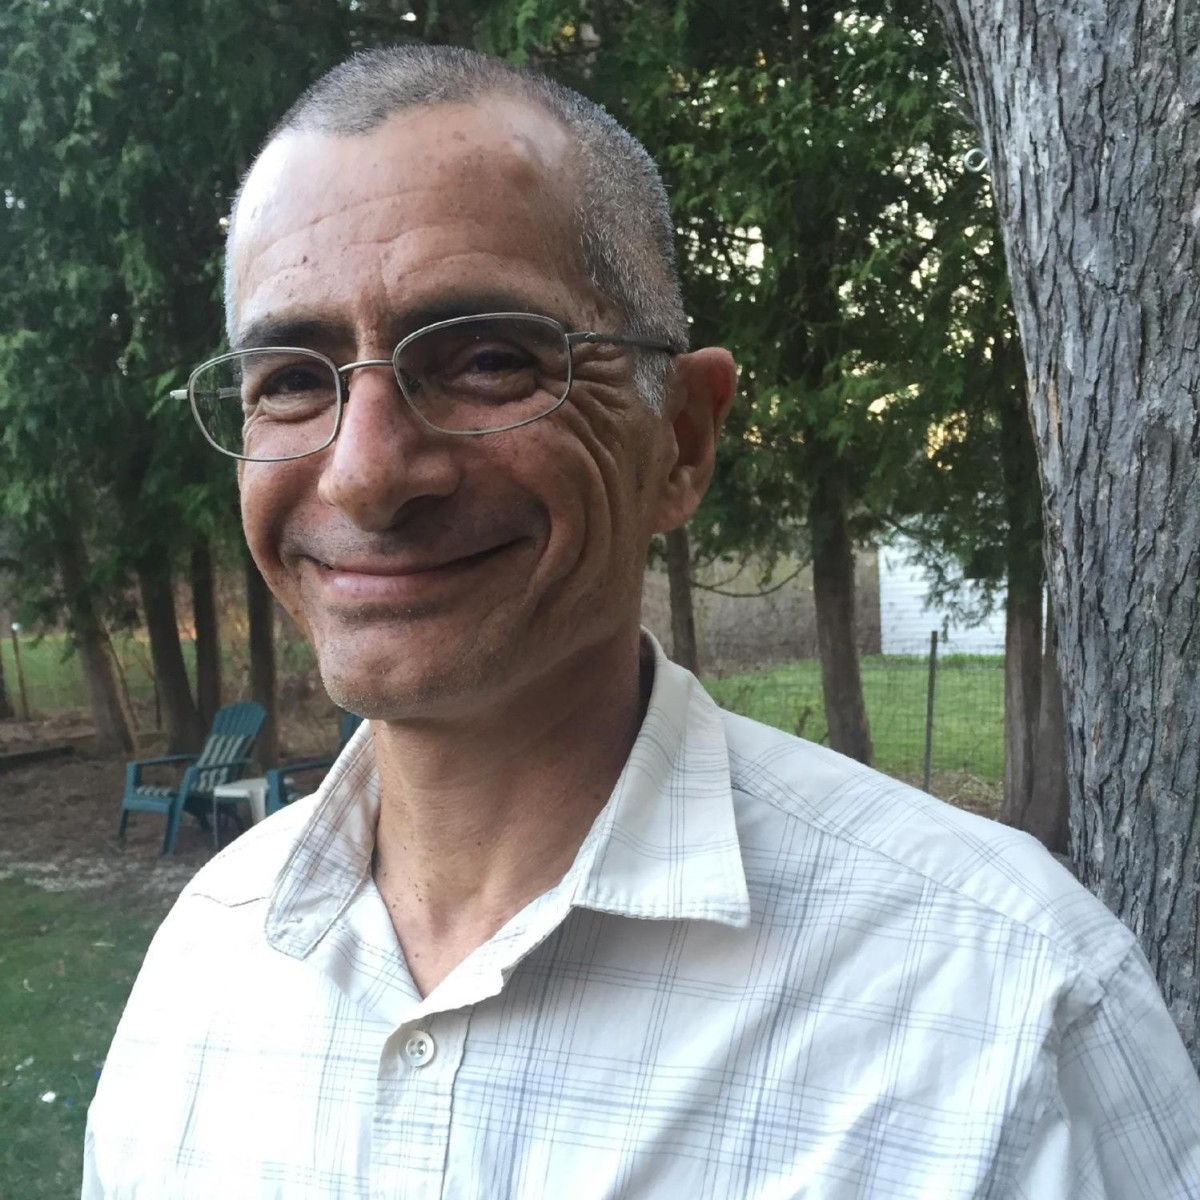 FRANCISCO CONTRERAS, AGRICULTURE OUTREACH SPECIALIST